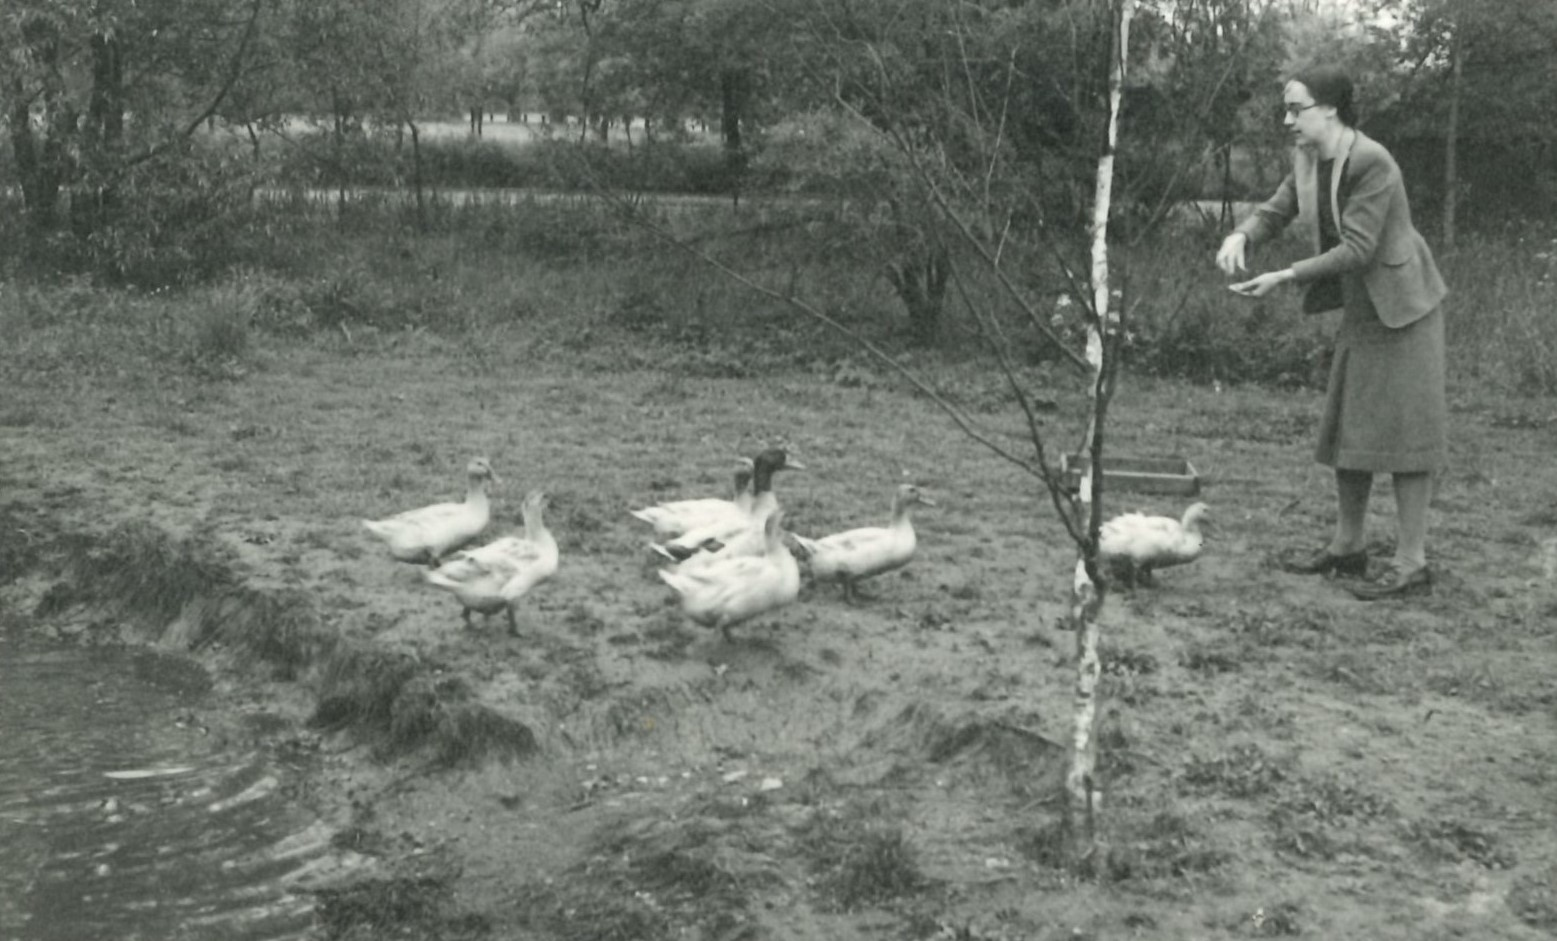 Monochrome photograph of feeding ducks in LMH gardens.